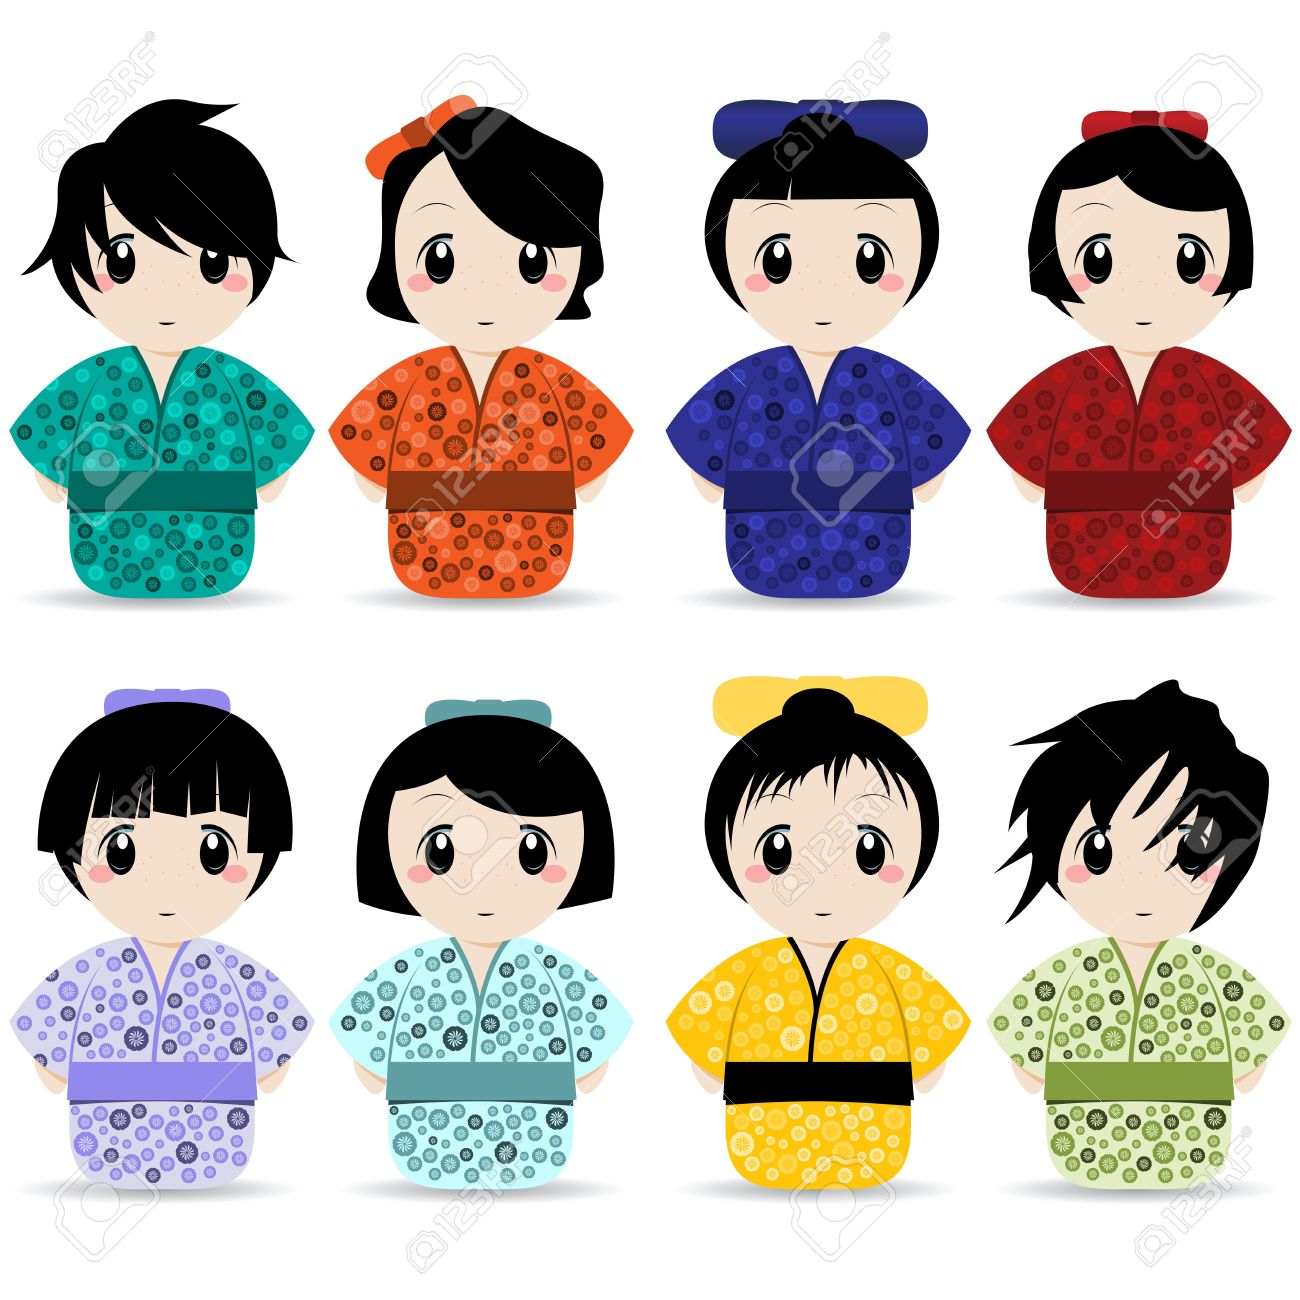 4,266 Geisha Stock Vector Illustration And Royalty Free Geisha Clipart.